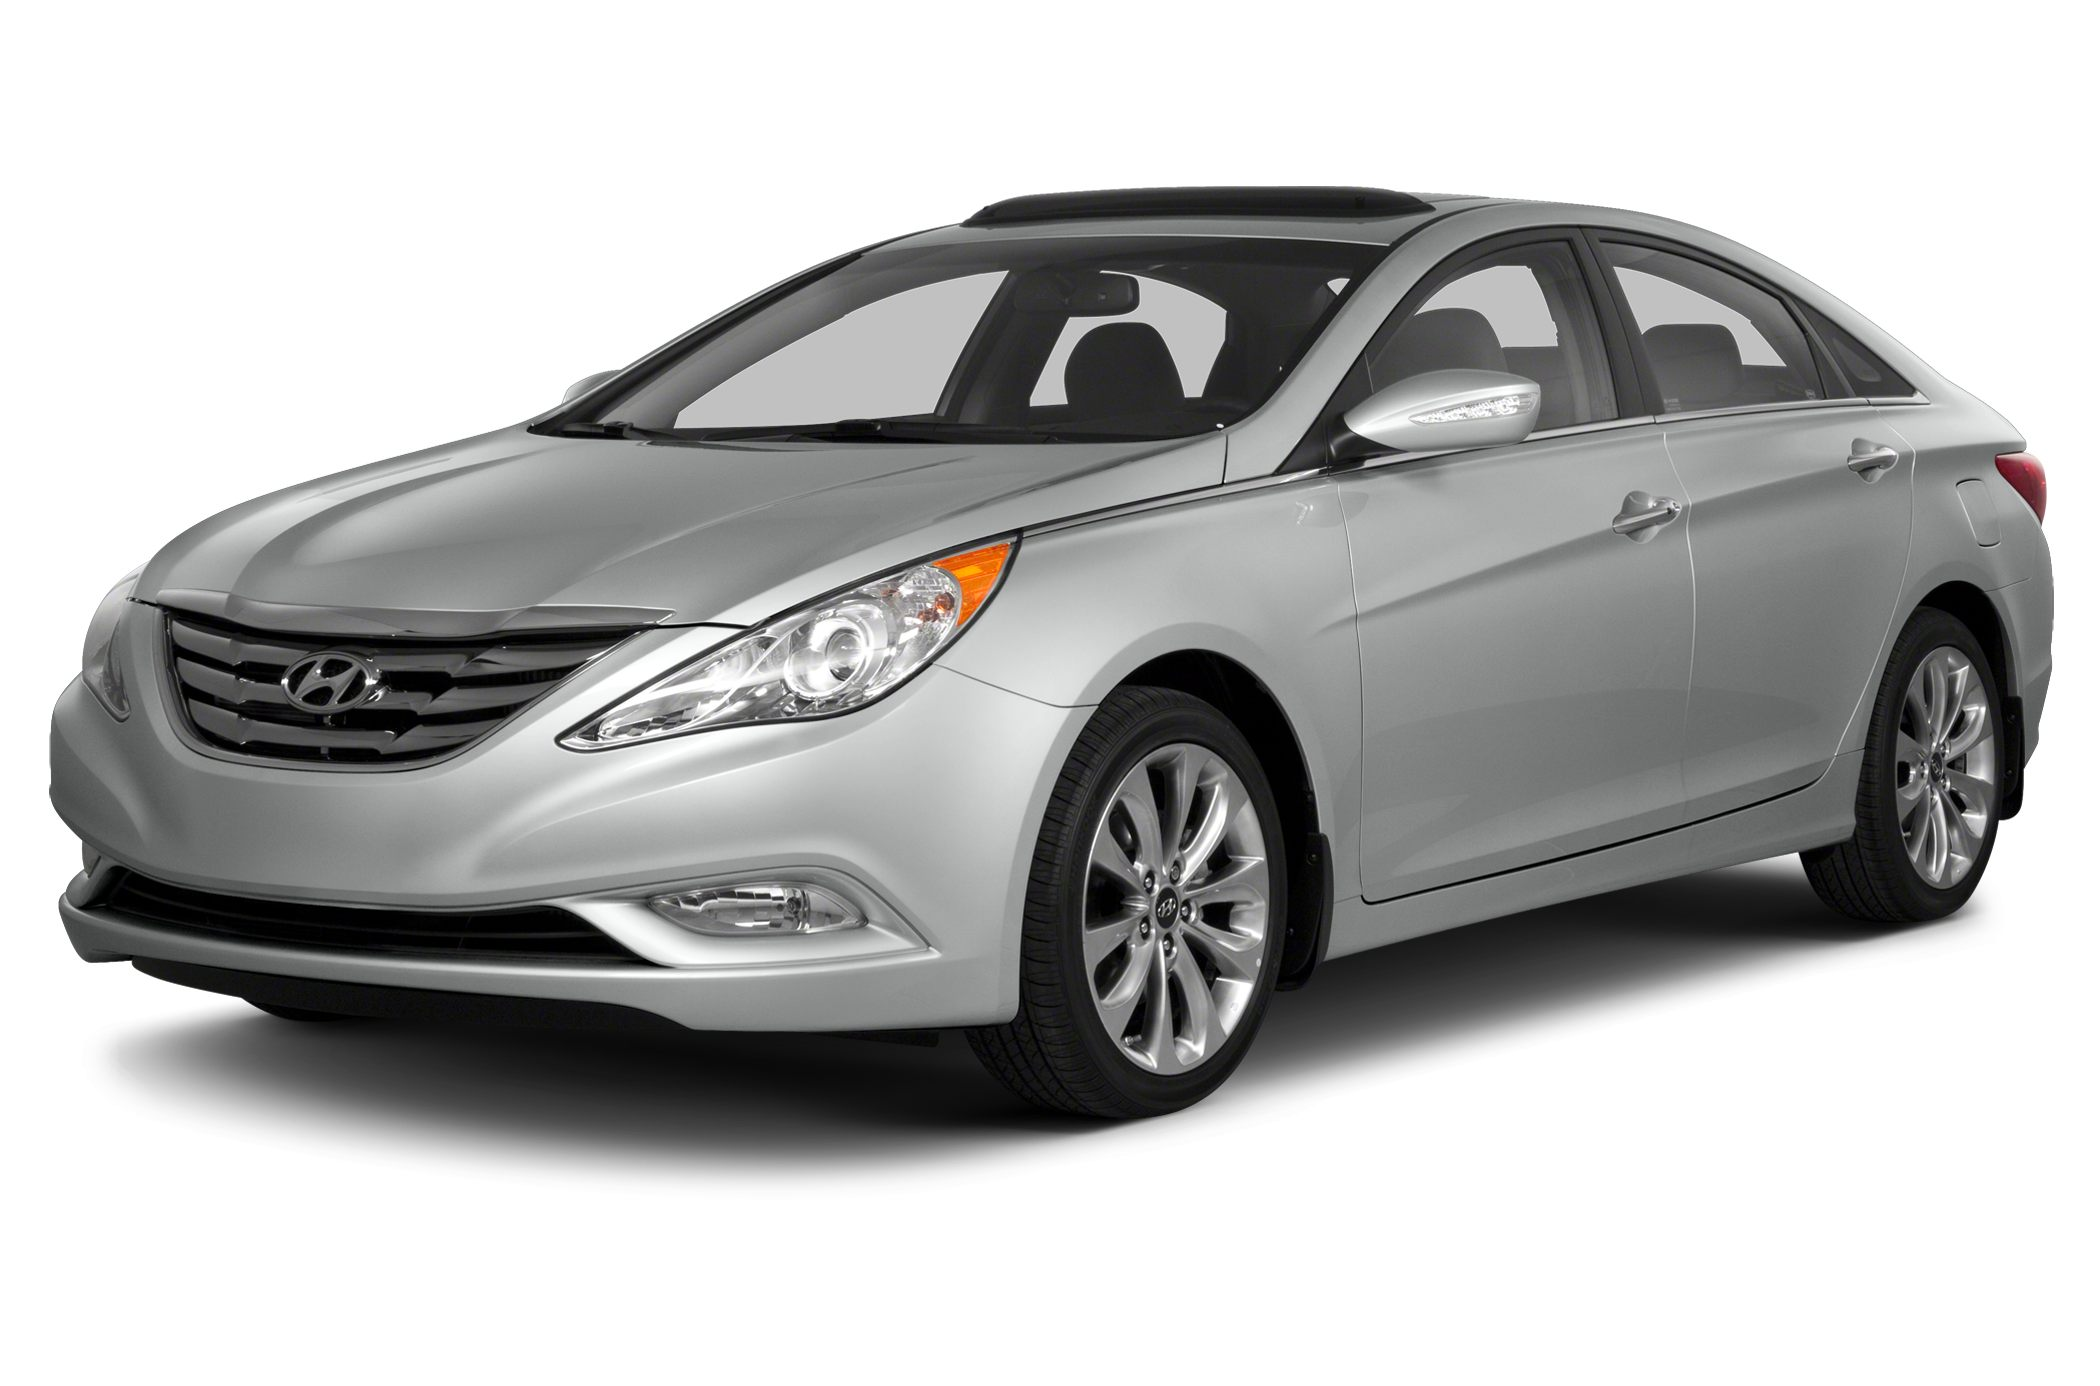 2013 Hyundai Sonata GLS Miles 35885Color Phantom Black Metallic Stock H40069A VIN 5NPEB4ACXD